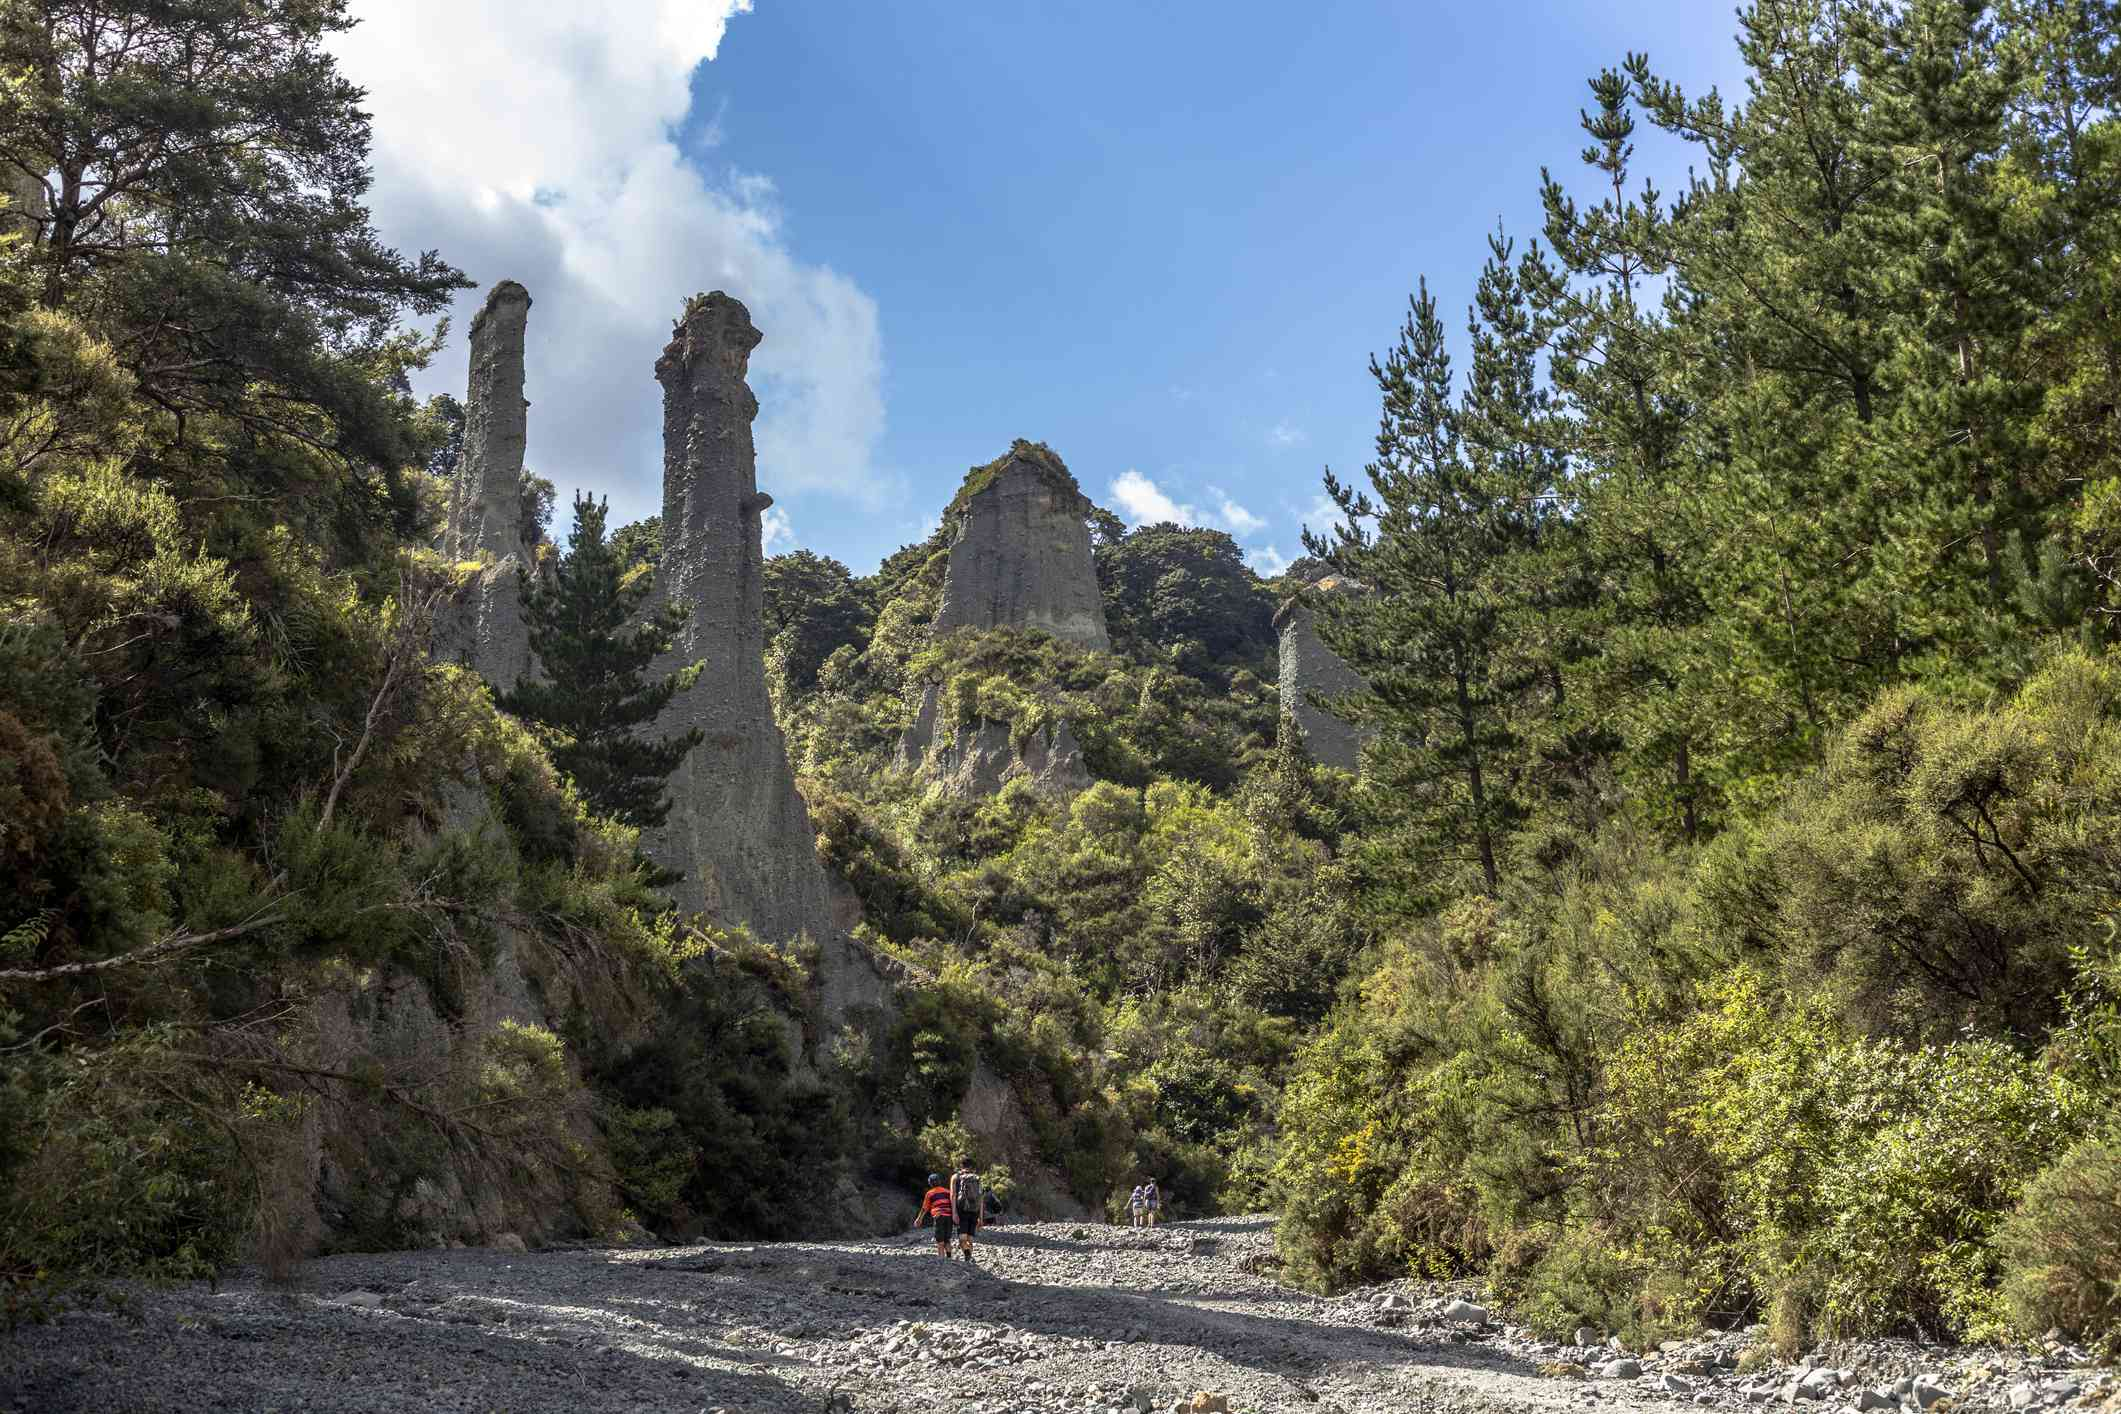 Two tourists on a trek in the Putangirua Pinnacles, large geological formations surrounded by a forest of green trees, in Aorangi Forest Park